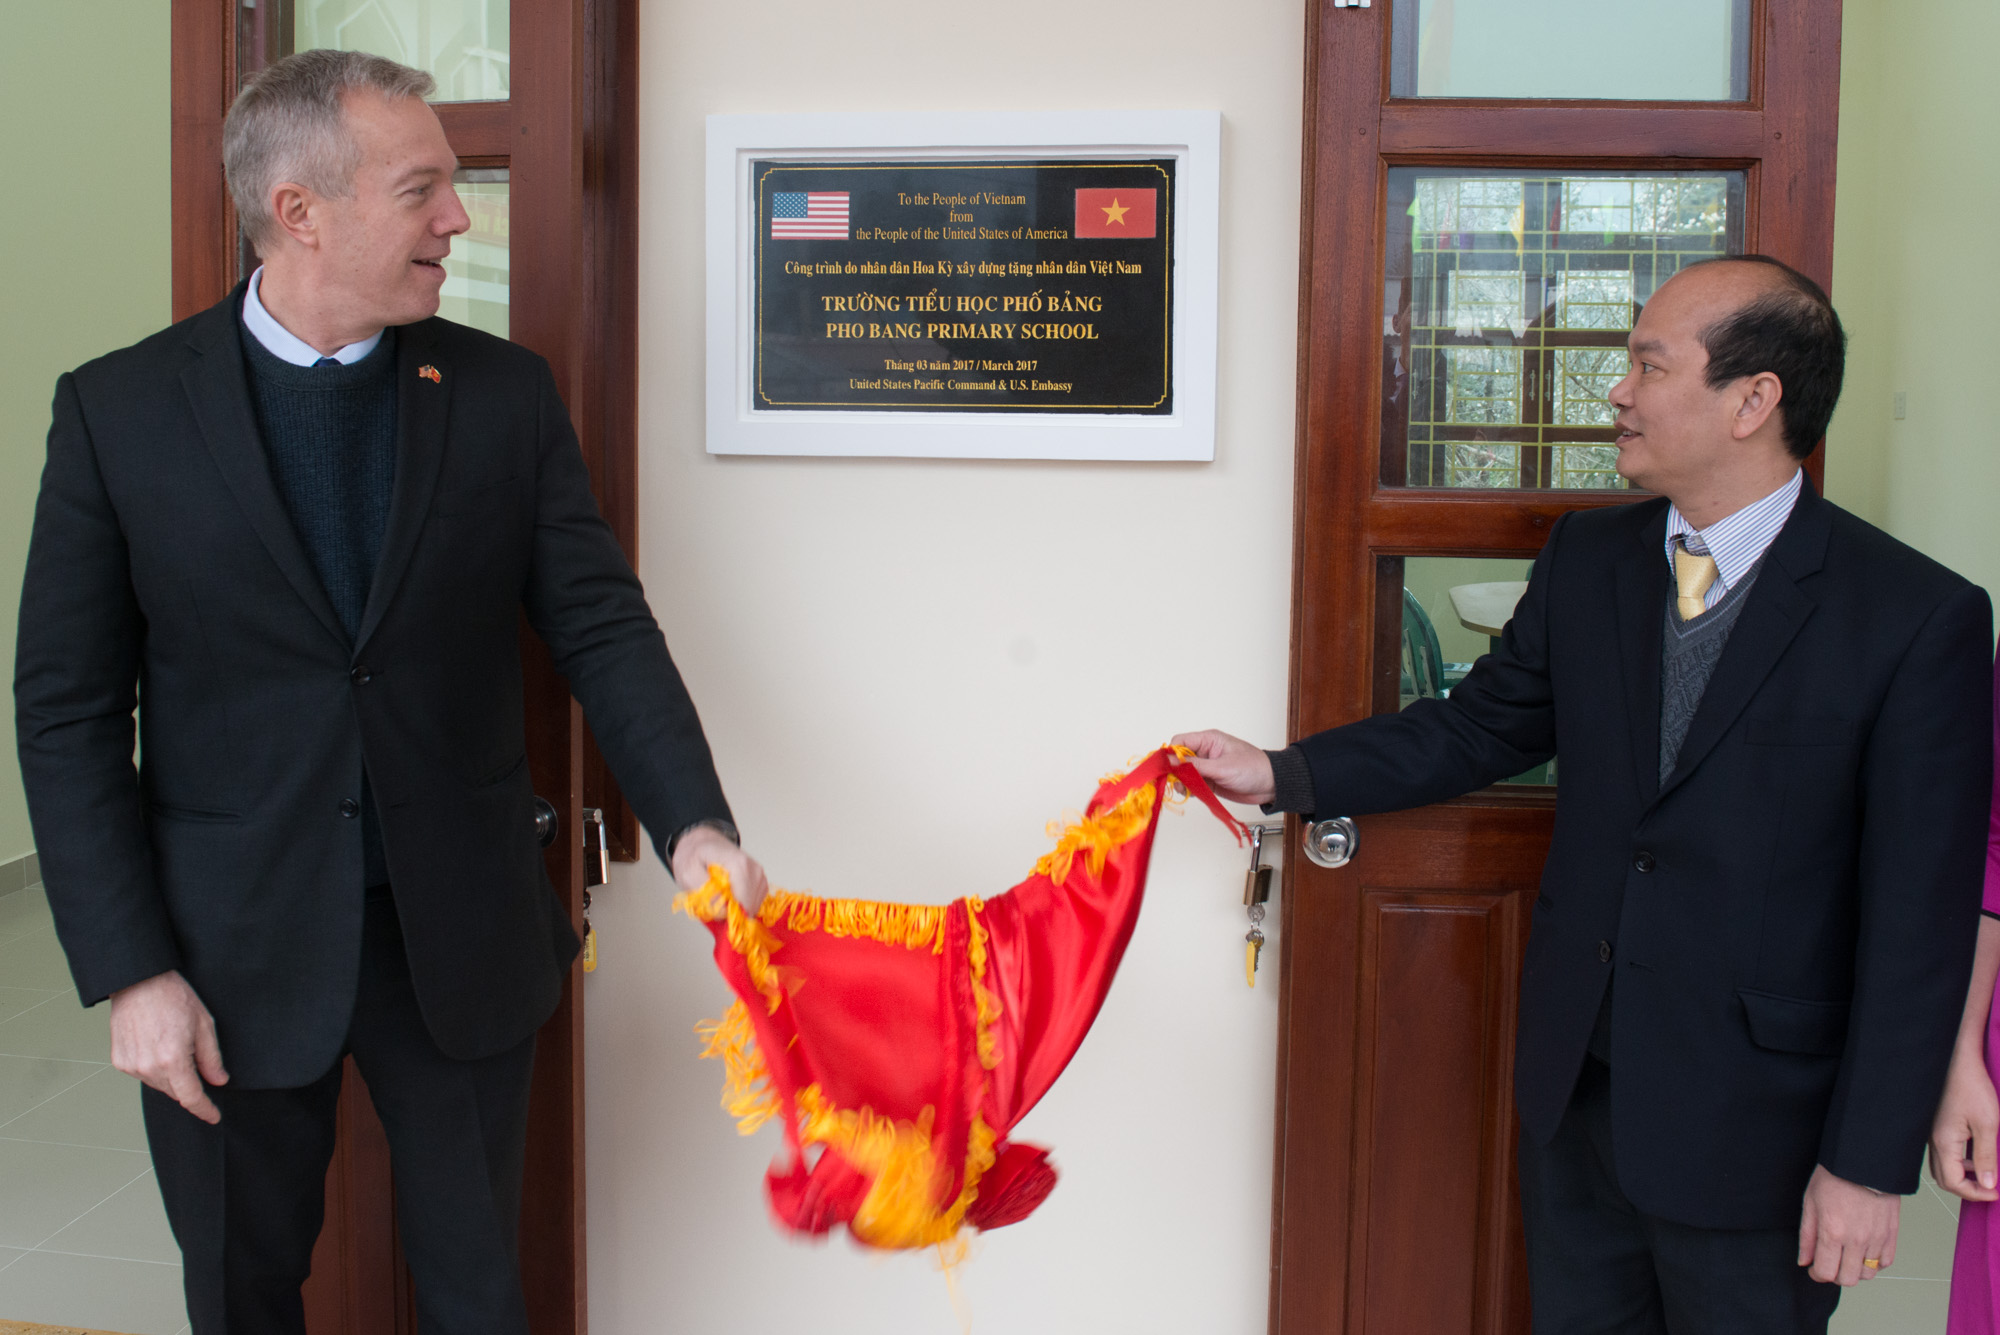 New US-constructed school inaugurated in Ha Giang province